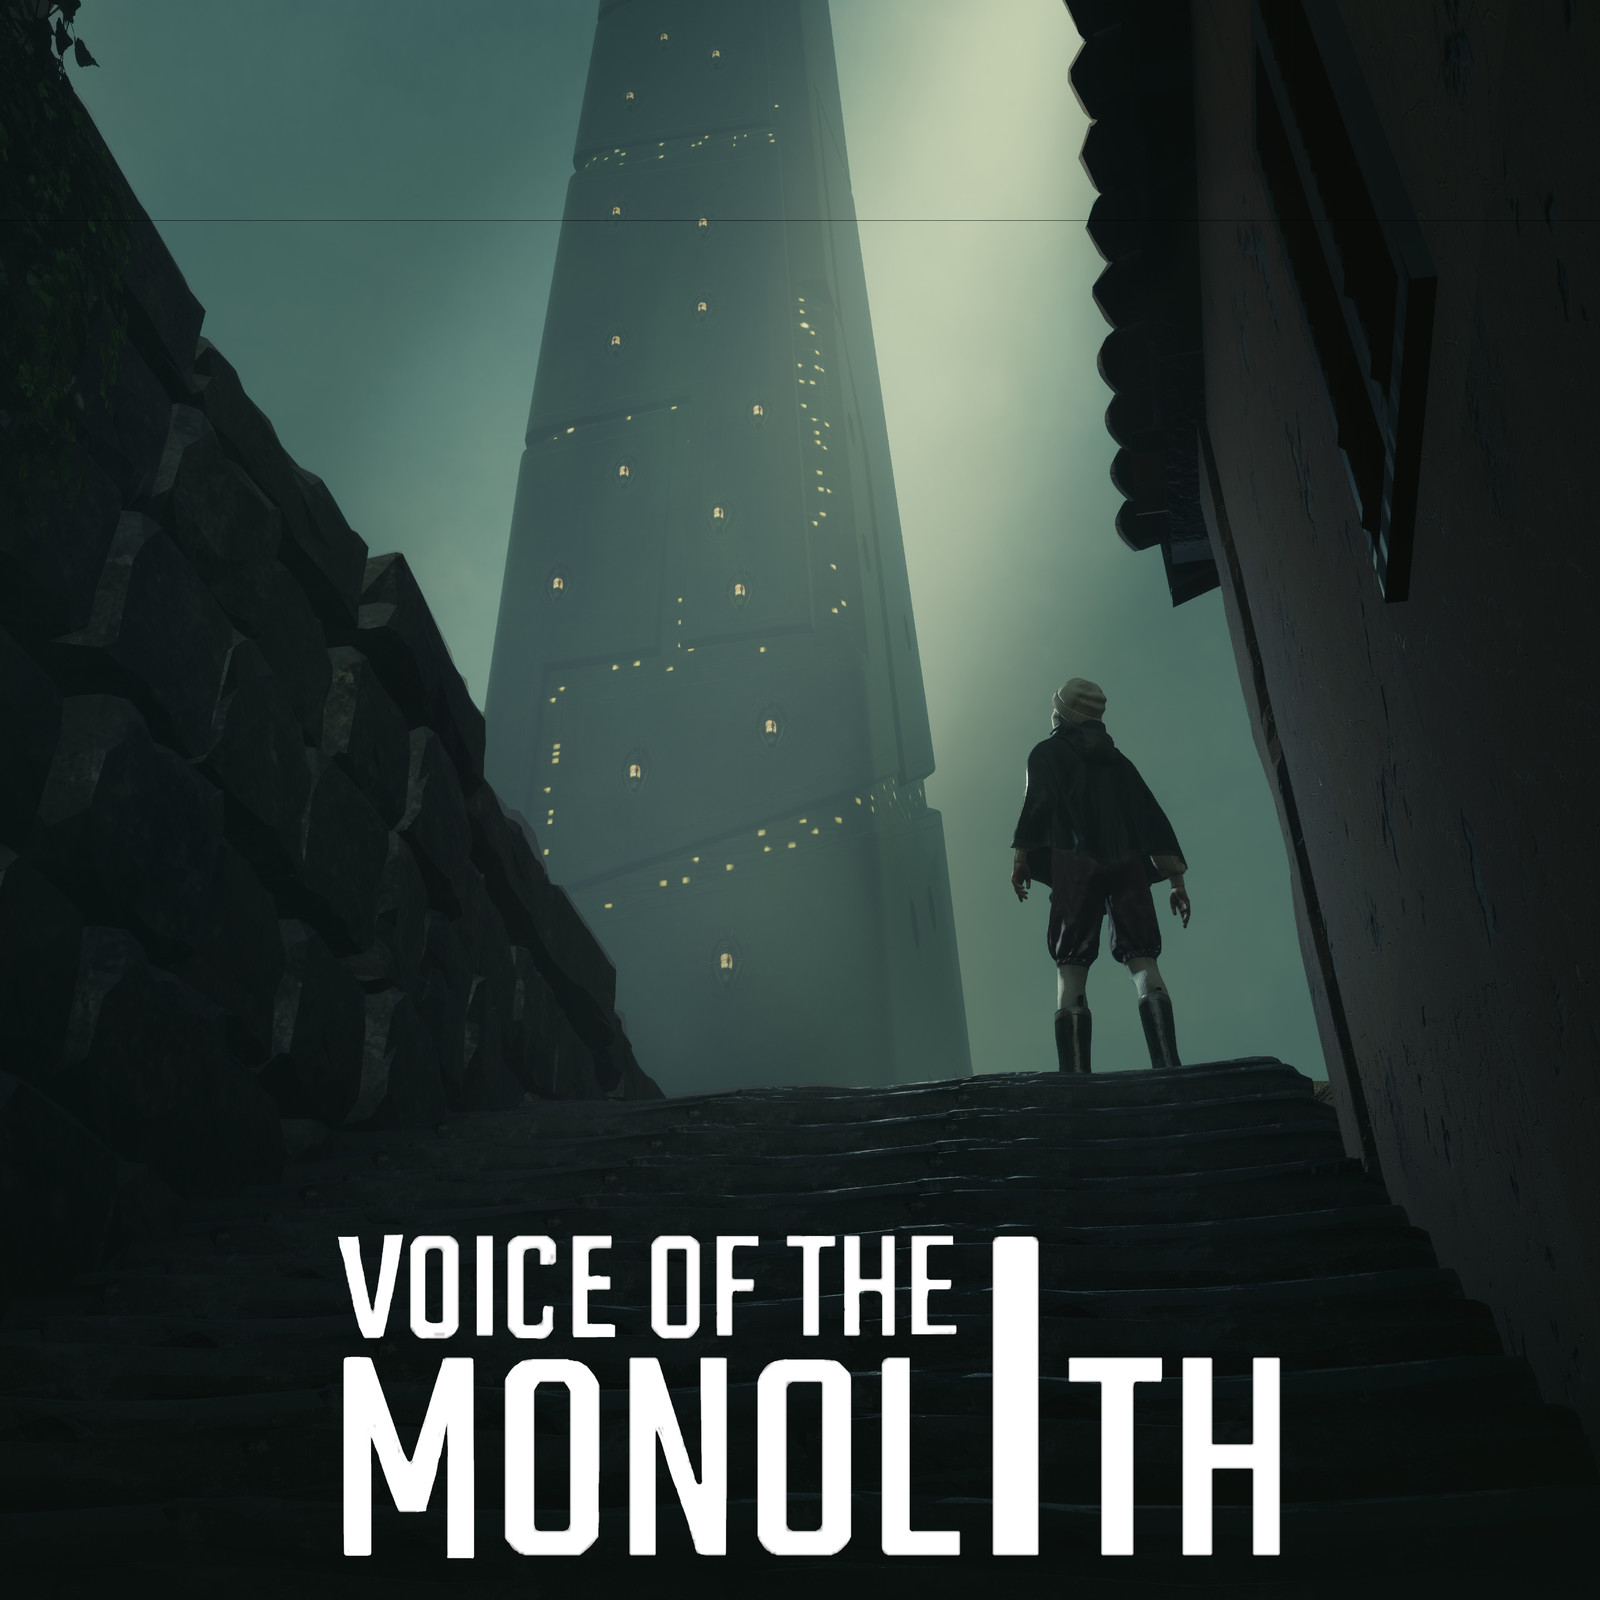 Voice of the Monolith